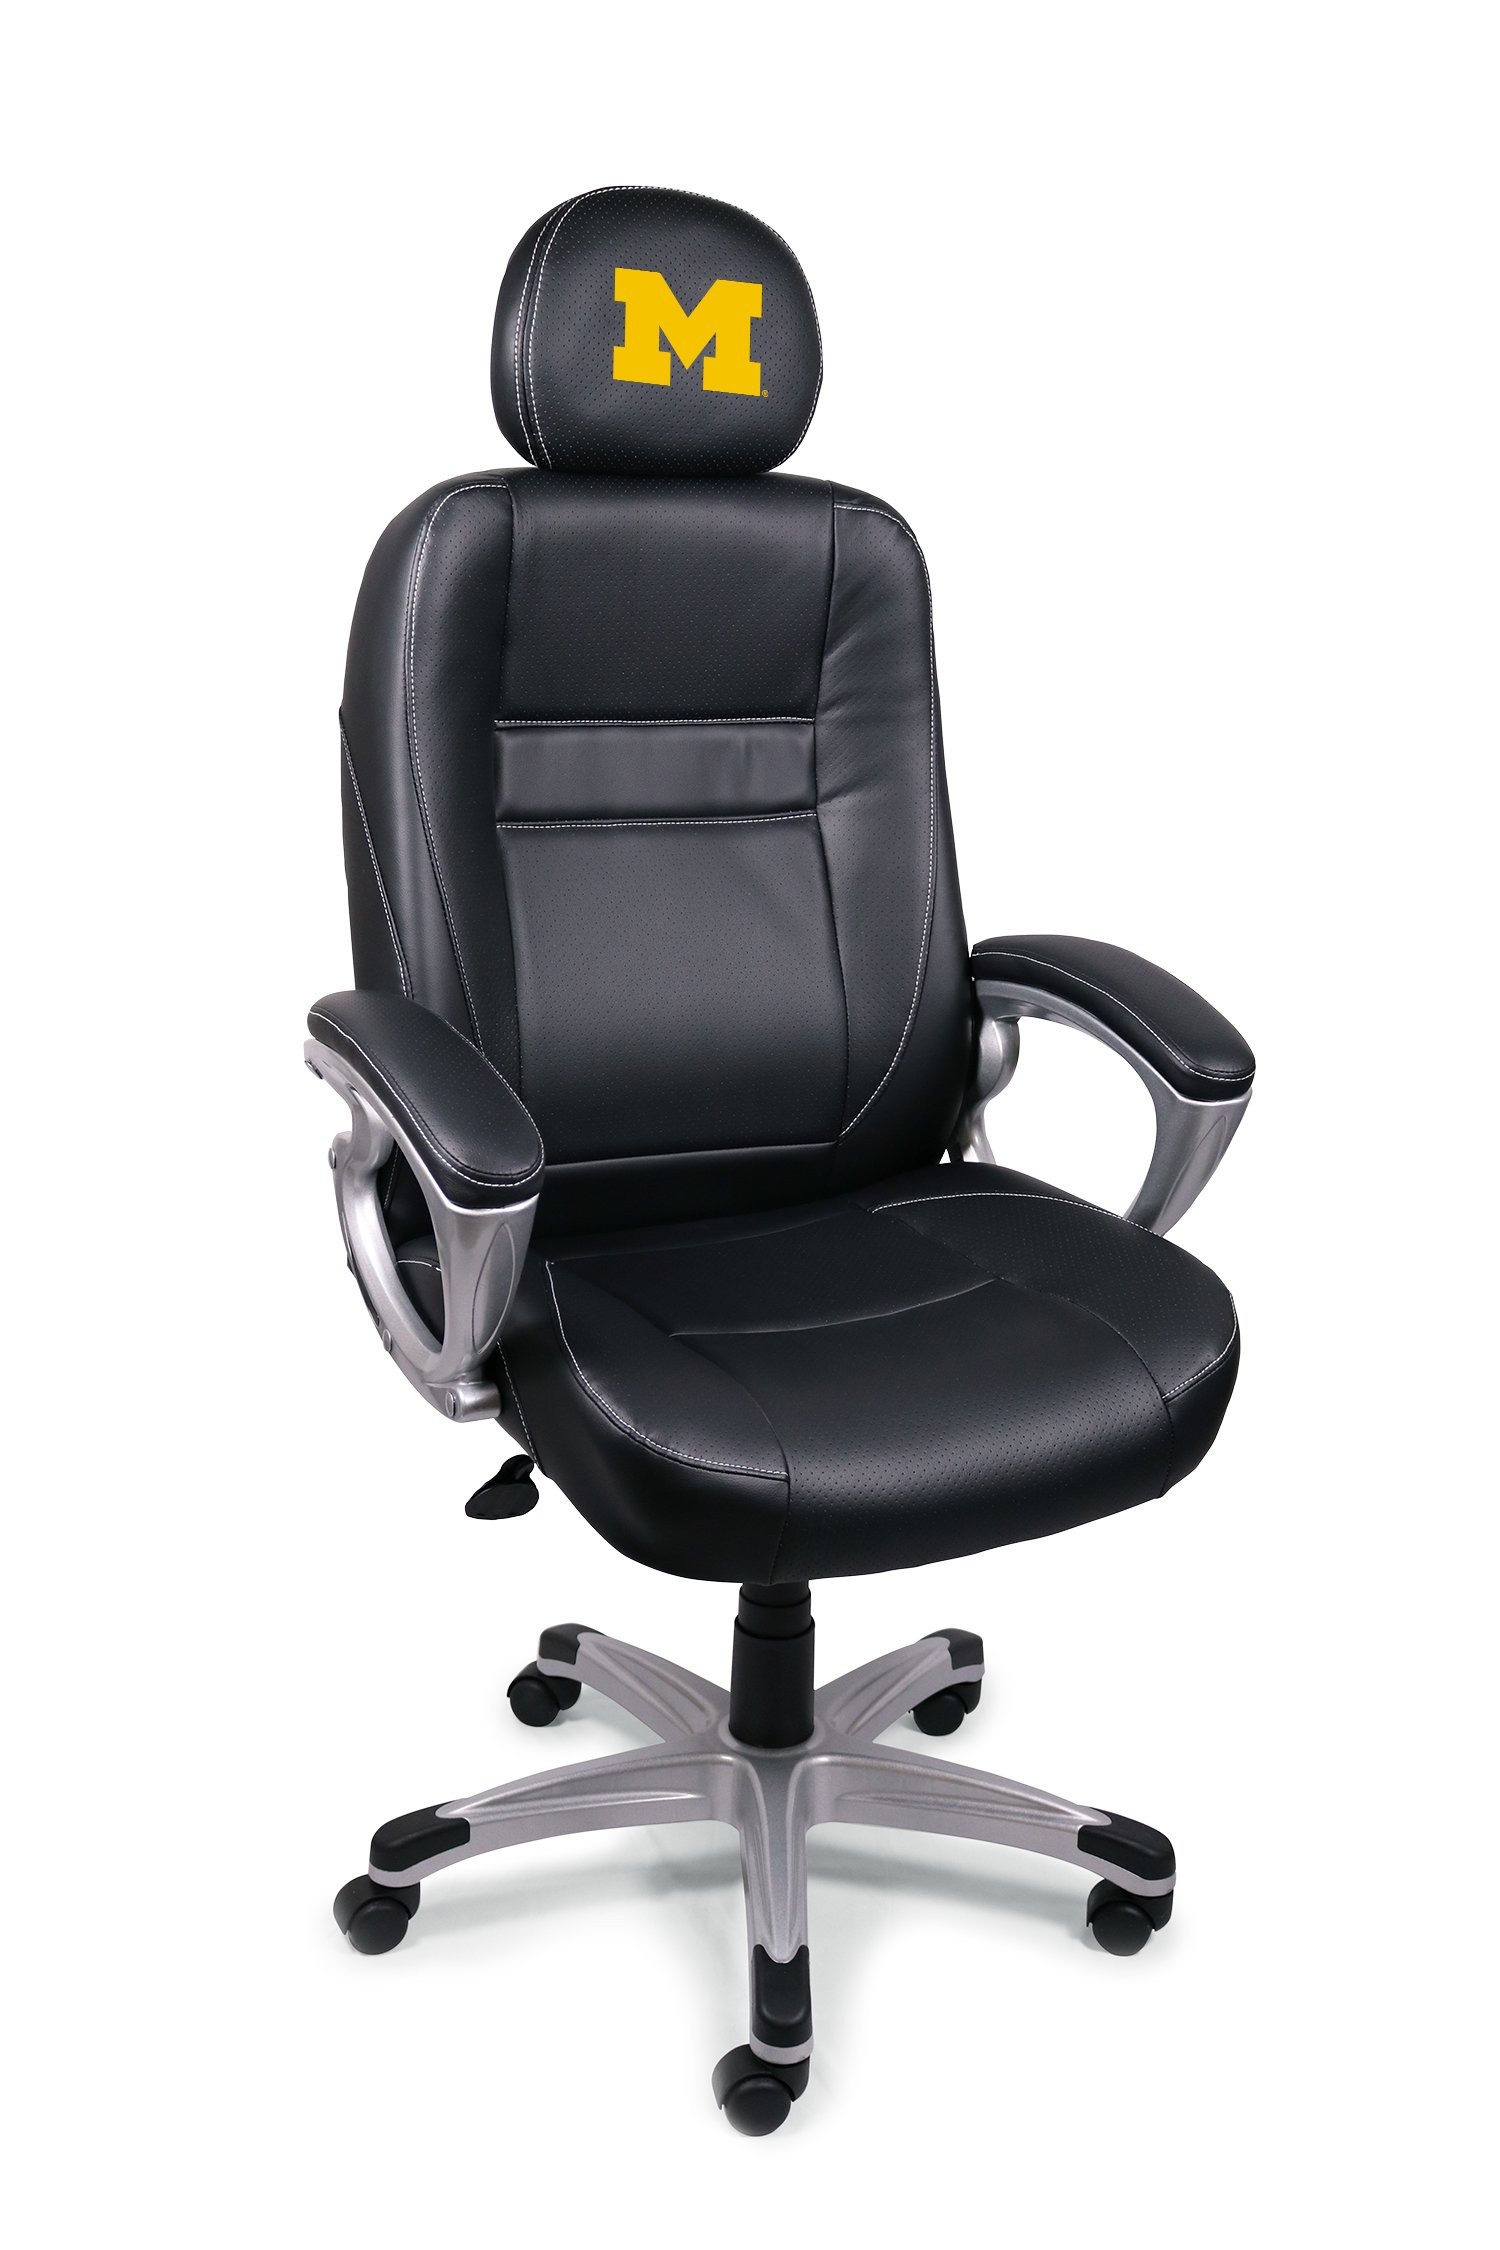 NCAA College Michigan Wolverines Leather Office Chair